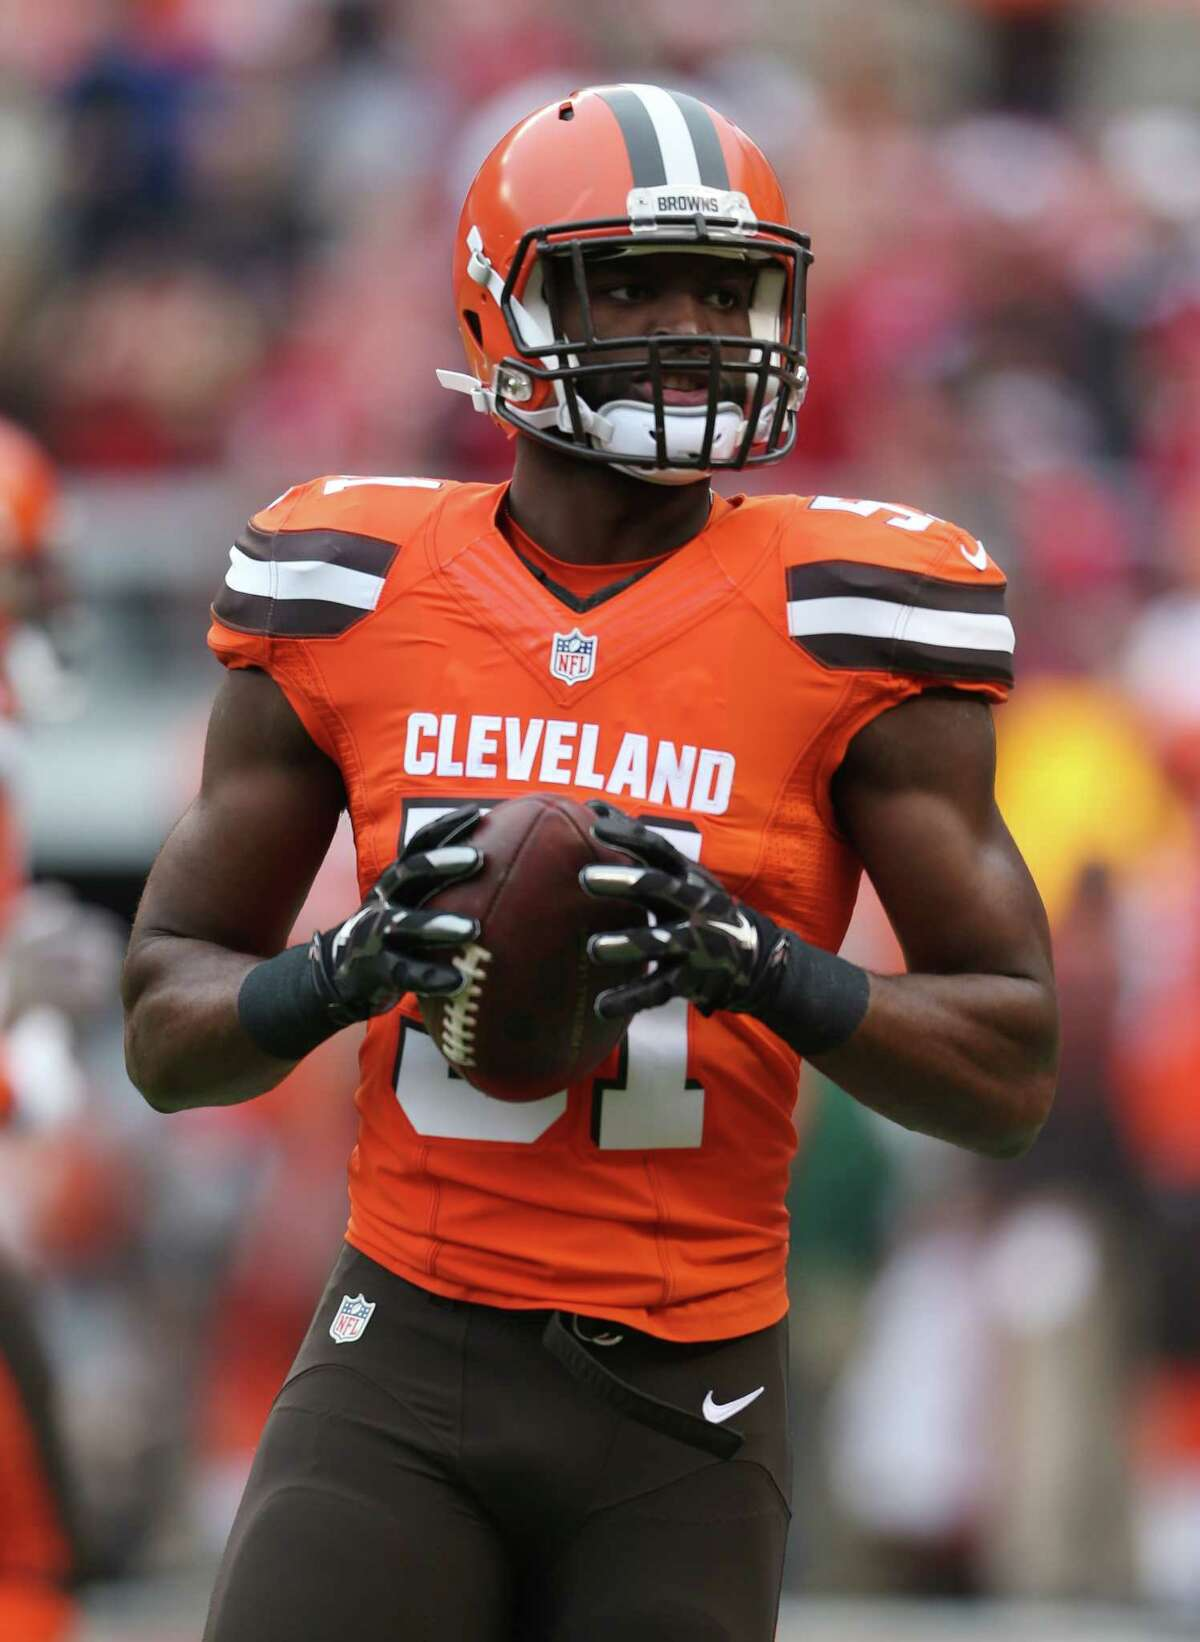 Cleveland Browns linebacker Barkevious Mingo (51) before an NFL football game between the San Francisco 49ers and the Cleveland Browns, Sunday, Dec. 13, 2015, in Cleveland. (AP Photo/Ron Schwane)